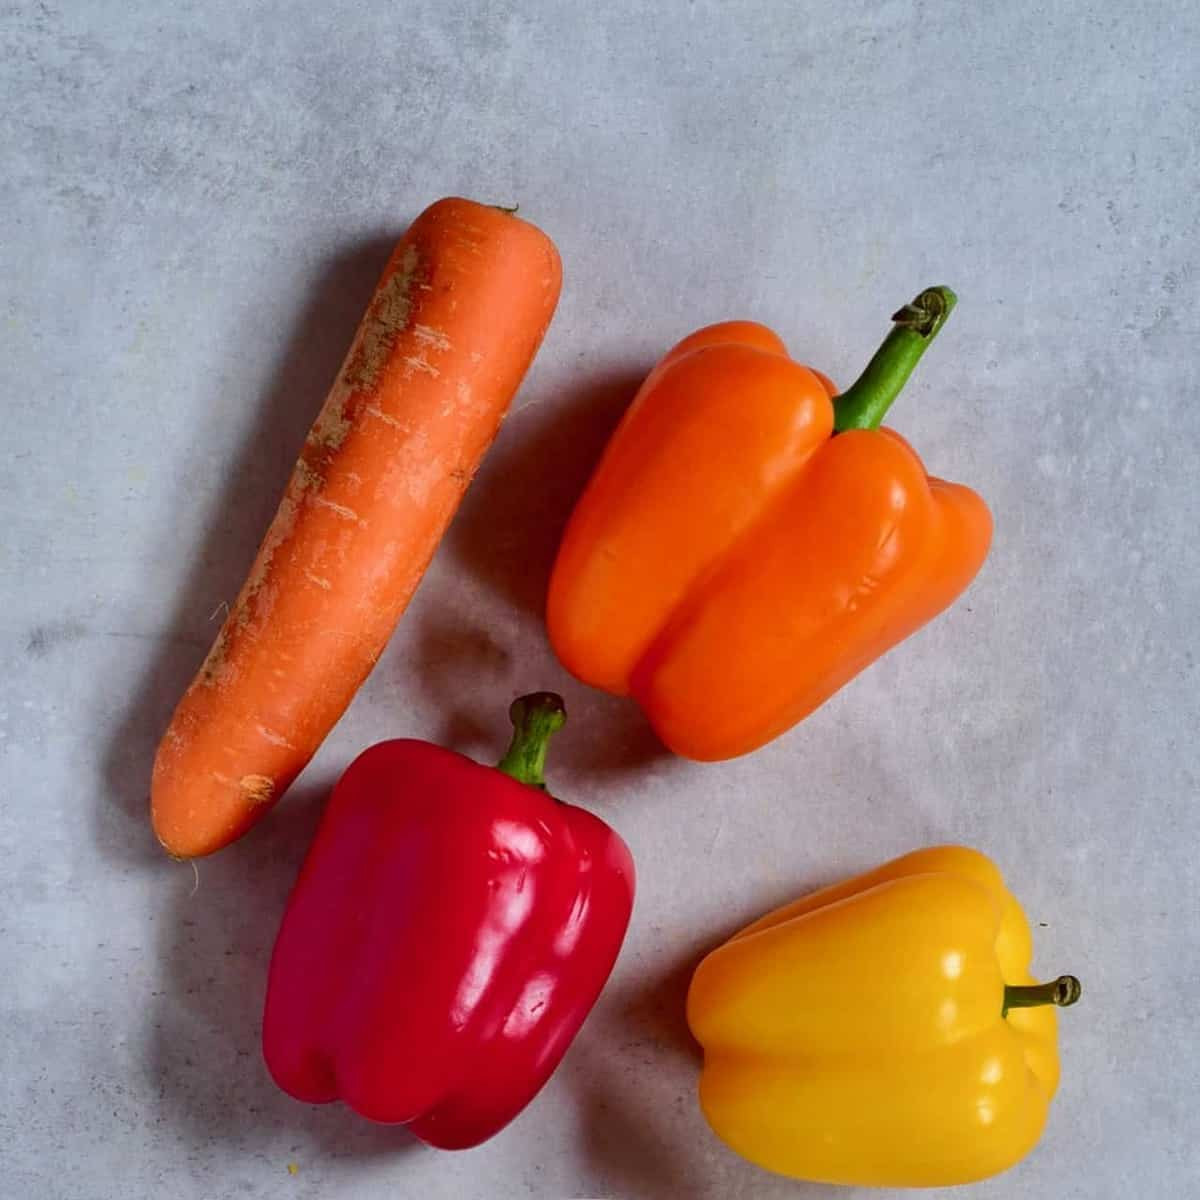 peppers and carrot